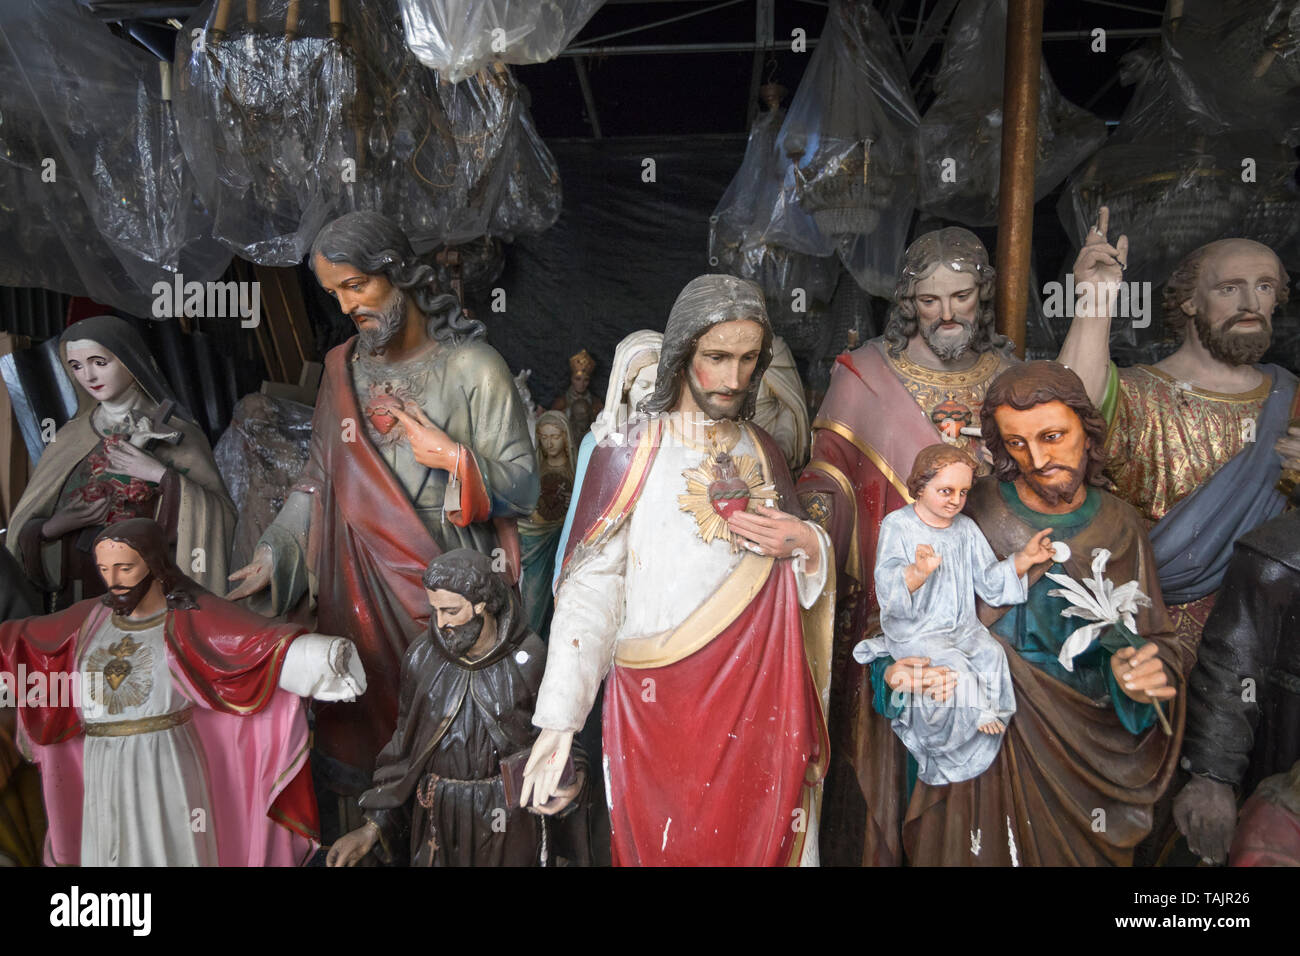 Discarded Roman Catholic Christian statuettes stored in a shed - Stock Image